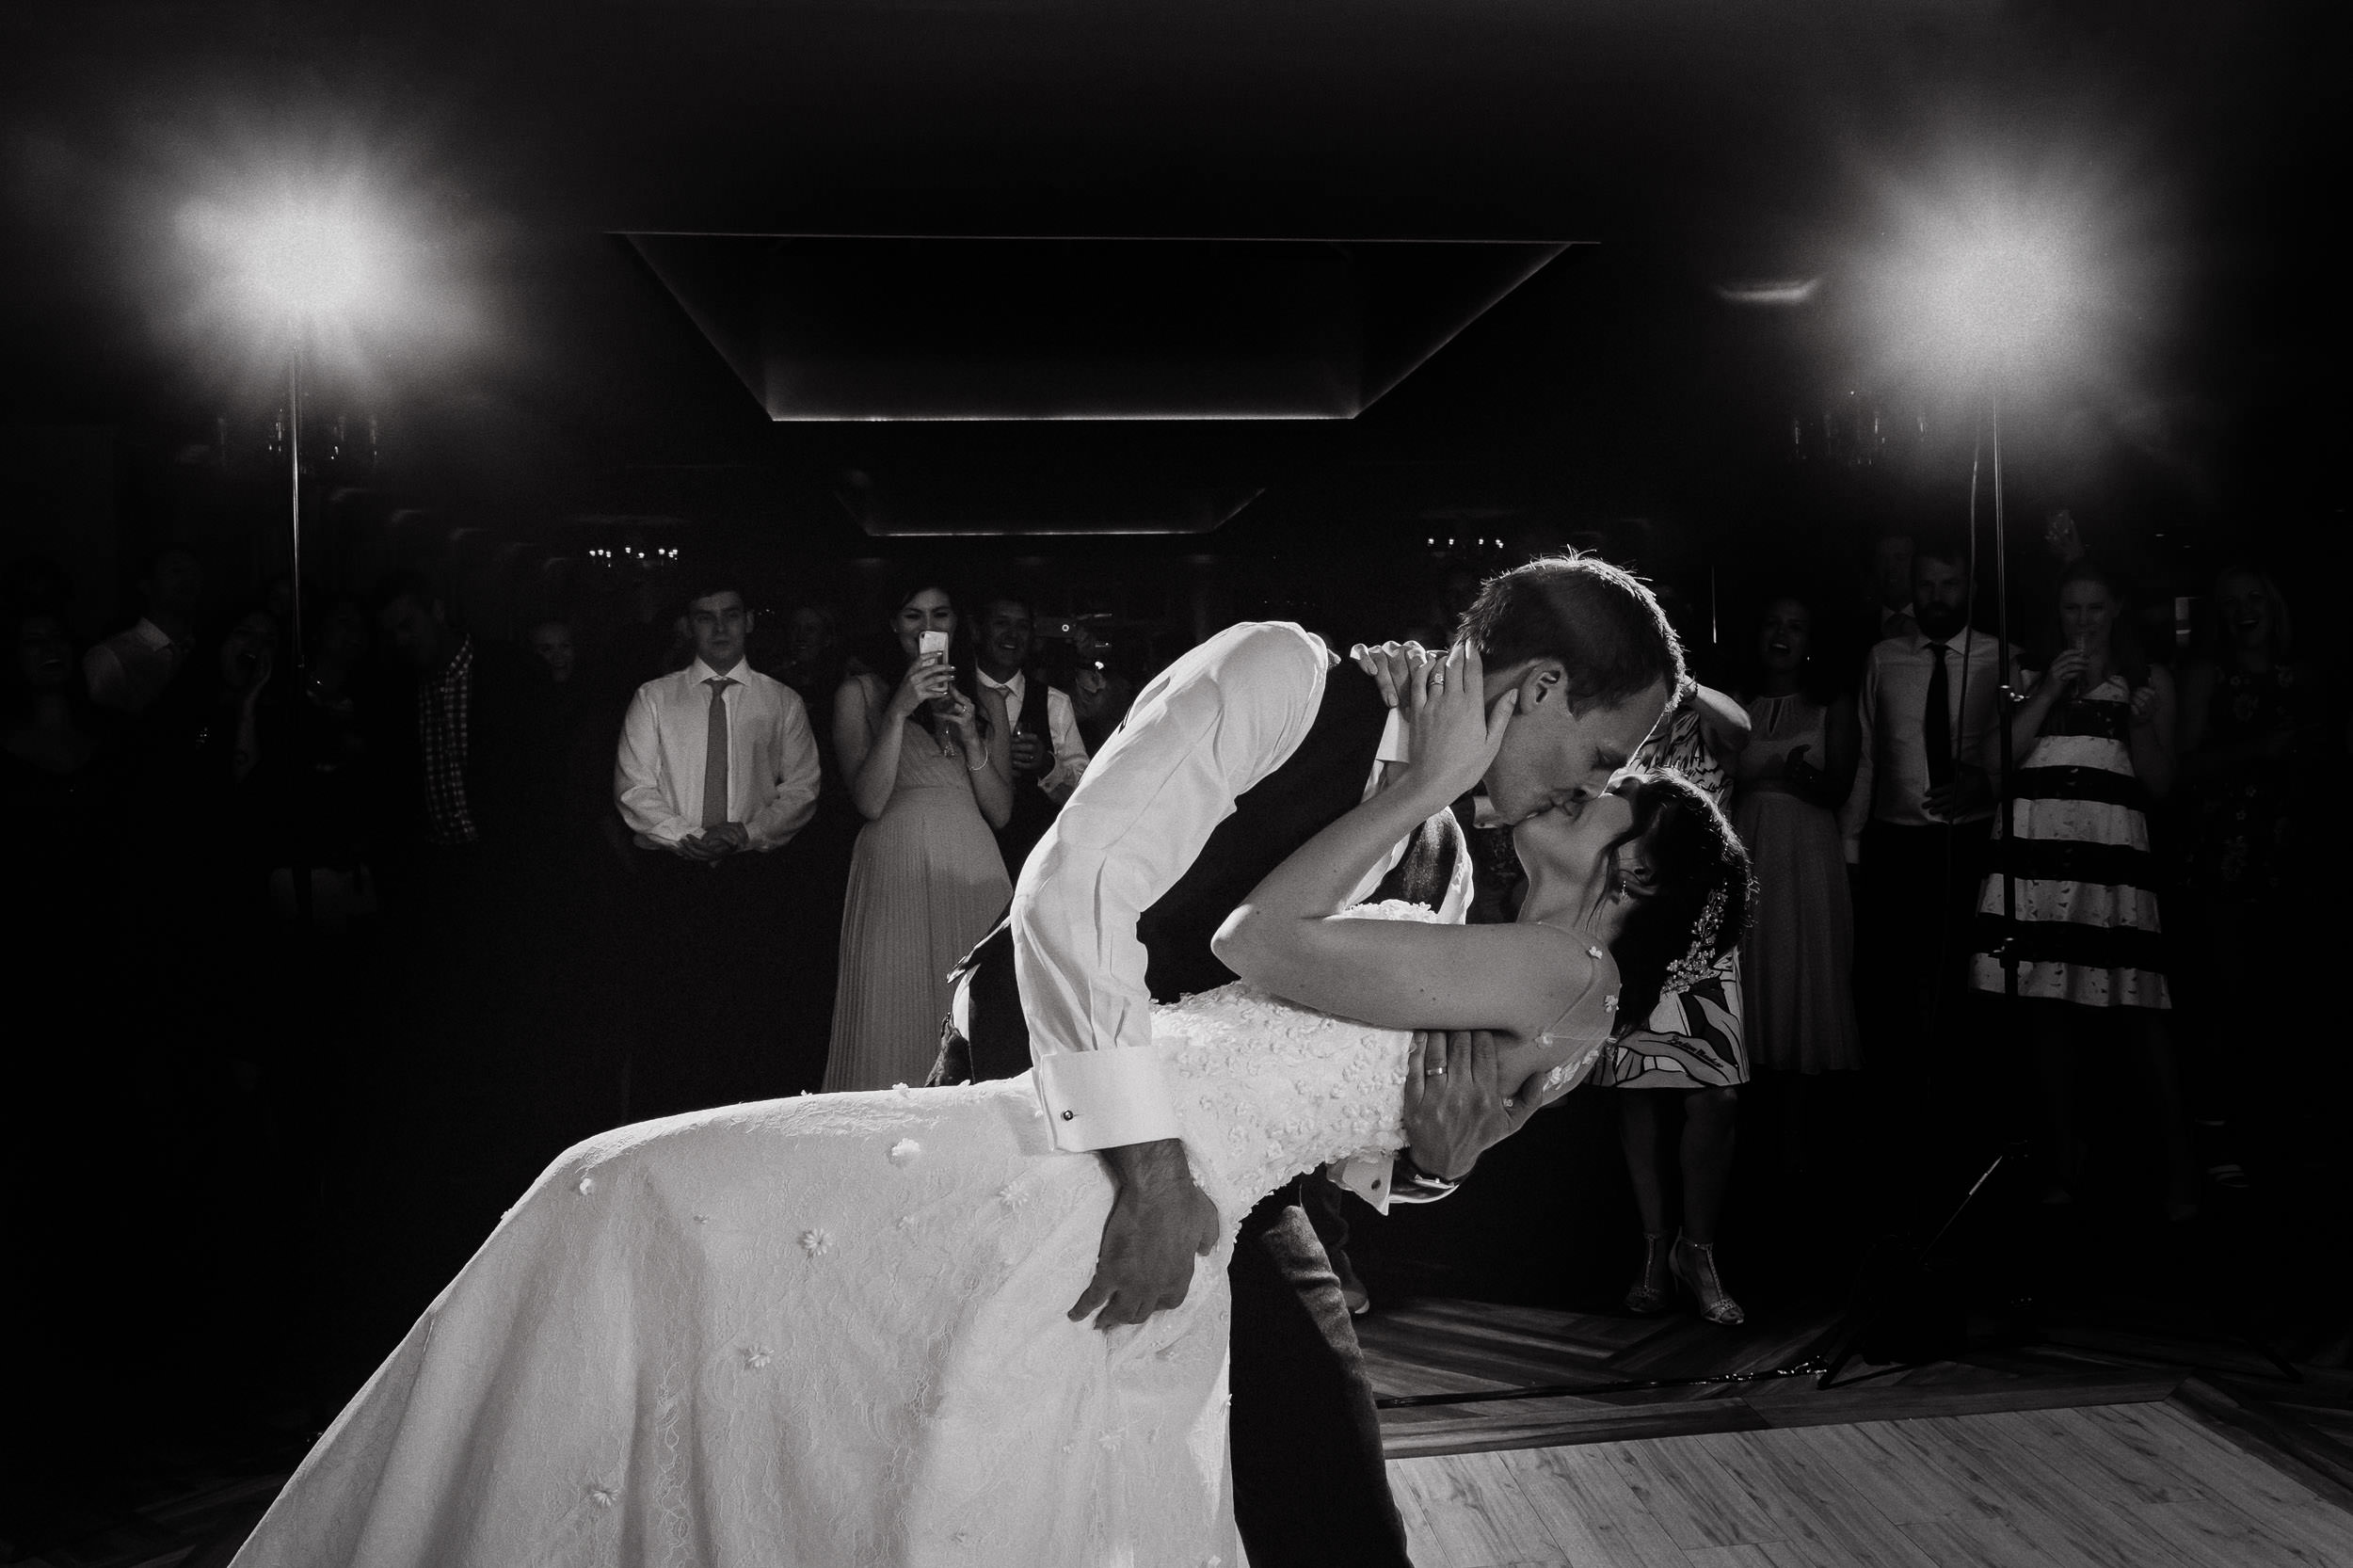 Orchardleigh Estate Wedding - Bride and Groom kiss during the First Dance